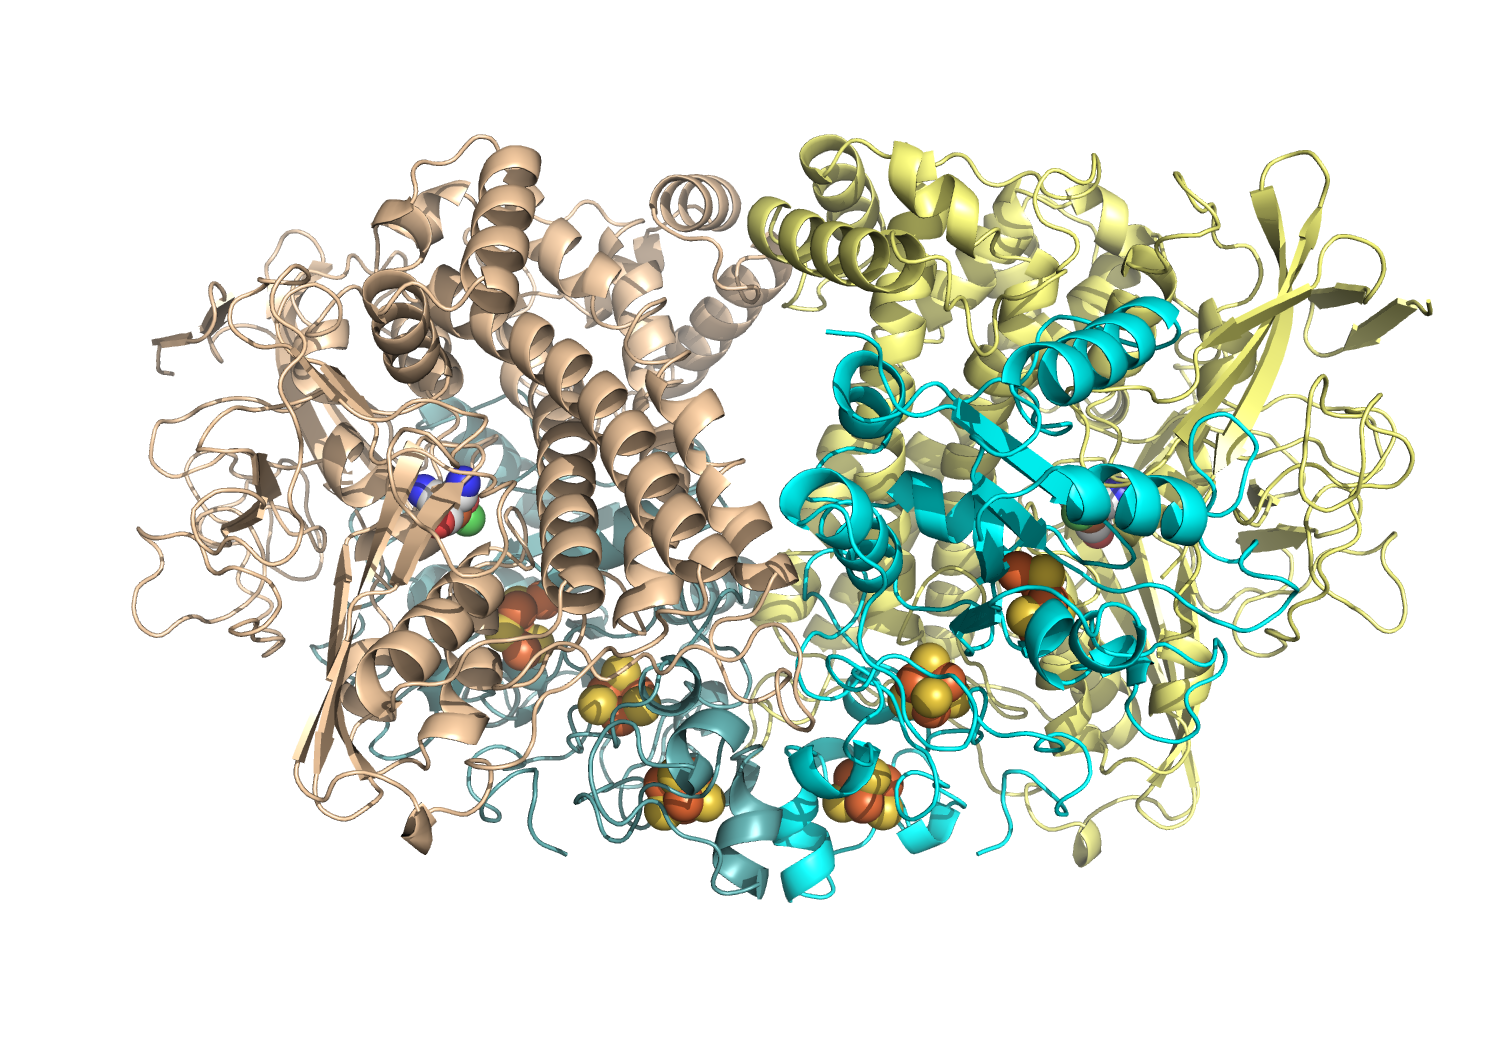 Hydrogenase is made of four chains of protein folded up and holding atoms of nickel and iron buried inside to form a site where hydrogen gas can be split